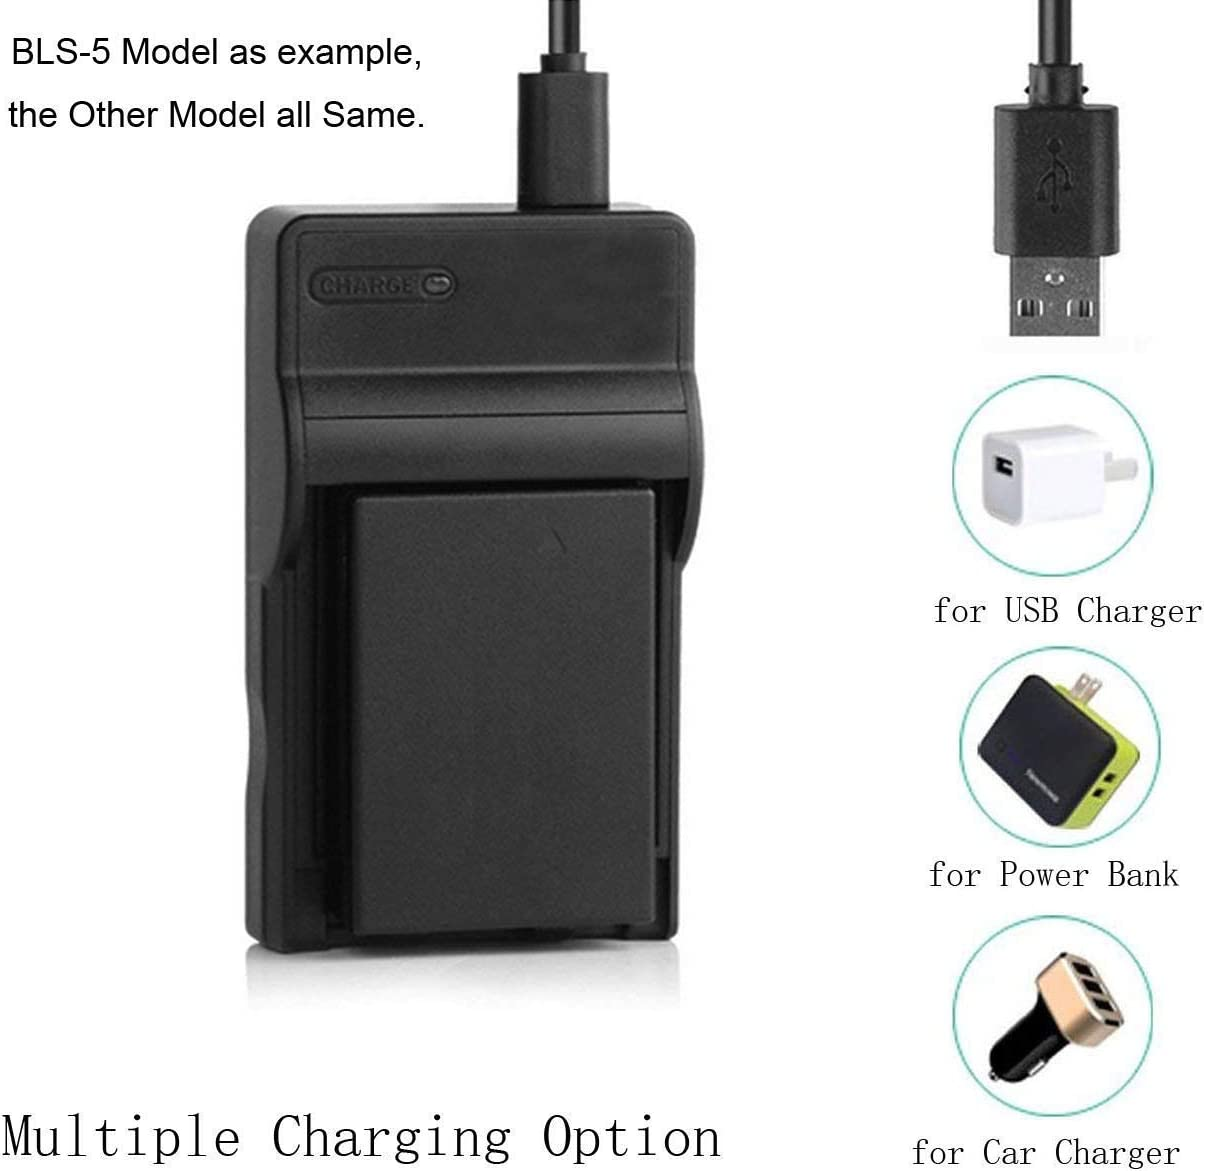 SCL906 Battery Charger for Samsung SCL901 SCL903 SCL907 Digital Video Camcorder